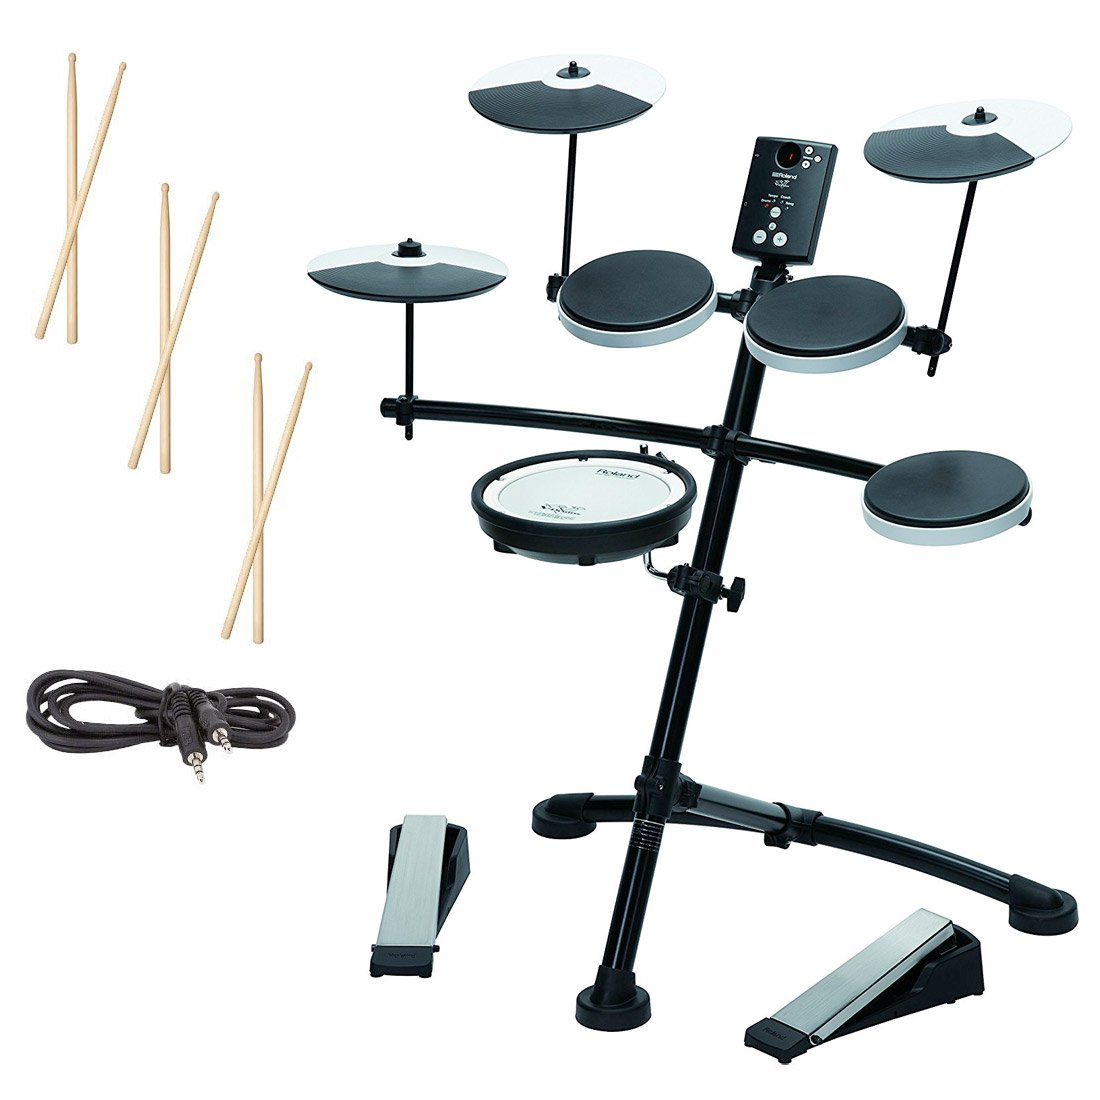 Roland TD-1KV Electronic Drum Set w/ 3 Pairs of Sticks, Audio Cable & Polishing Cloth